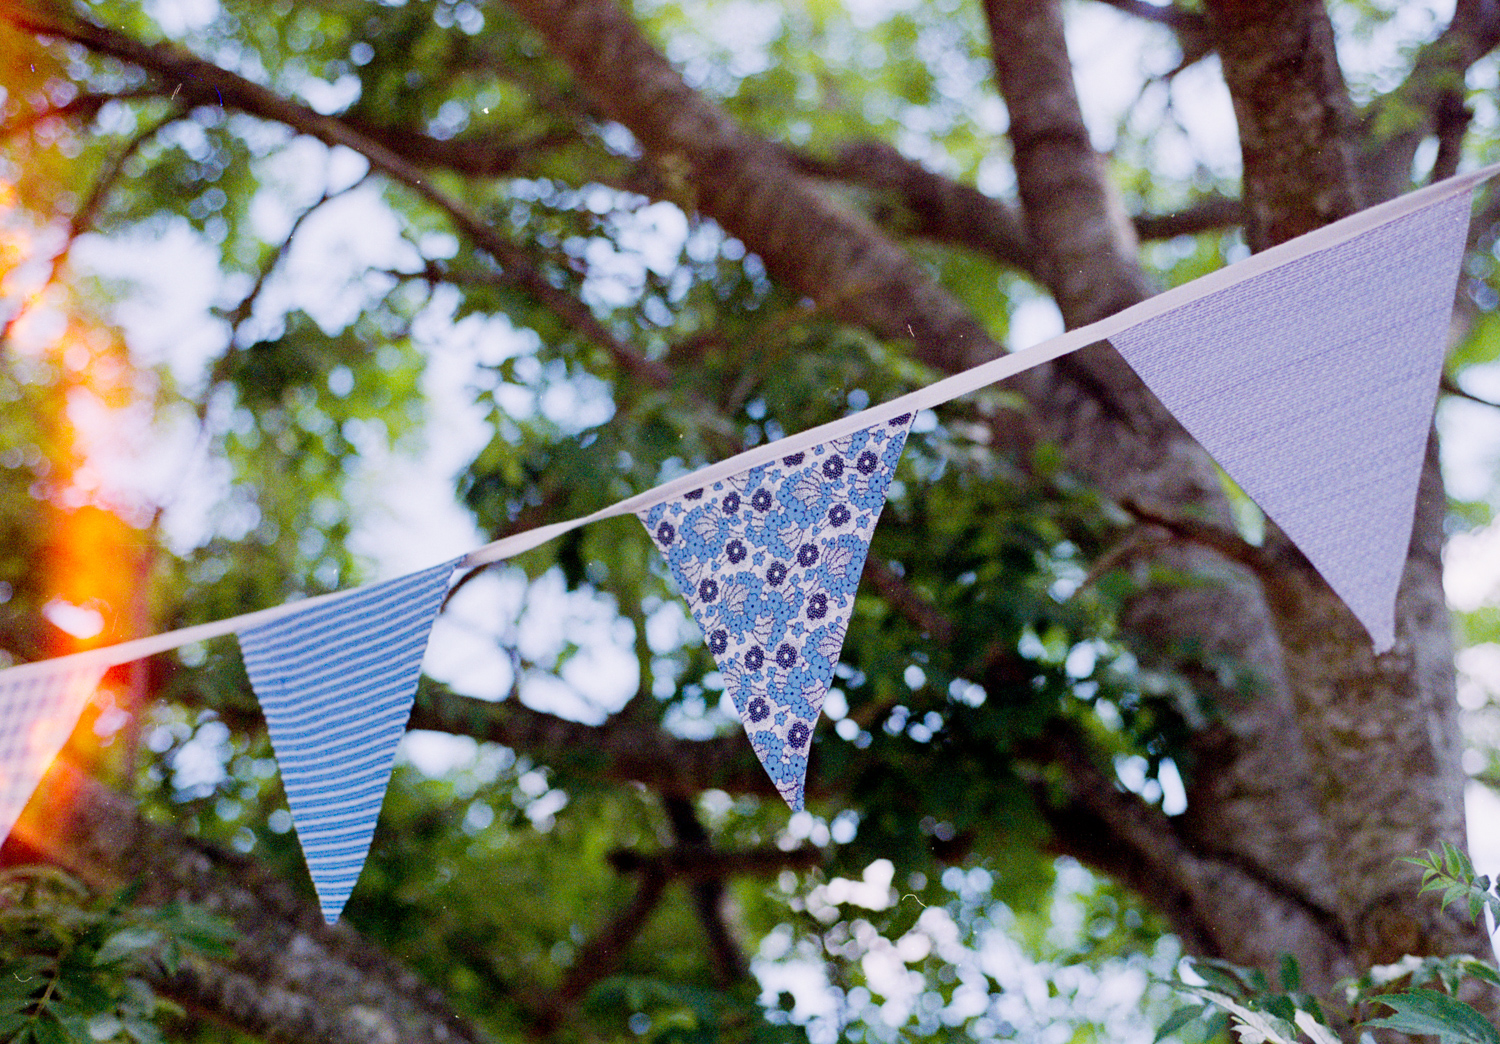 Photographing with film at weddings - bunting in a tree